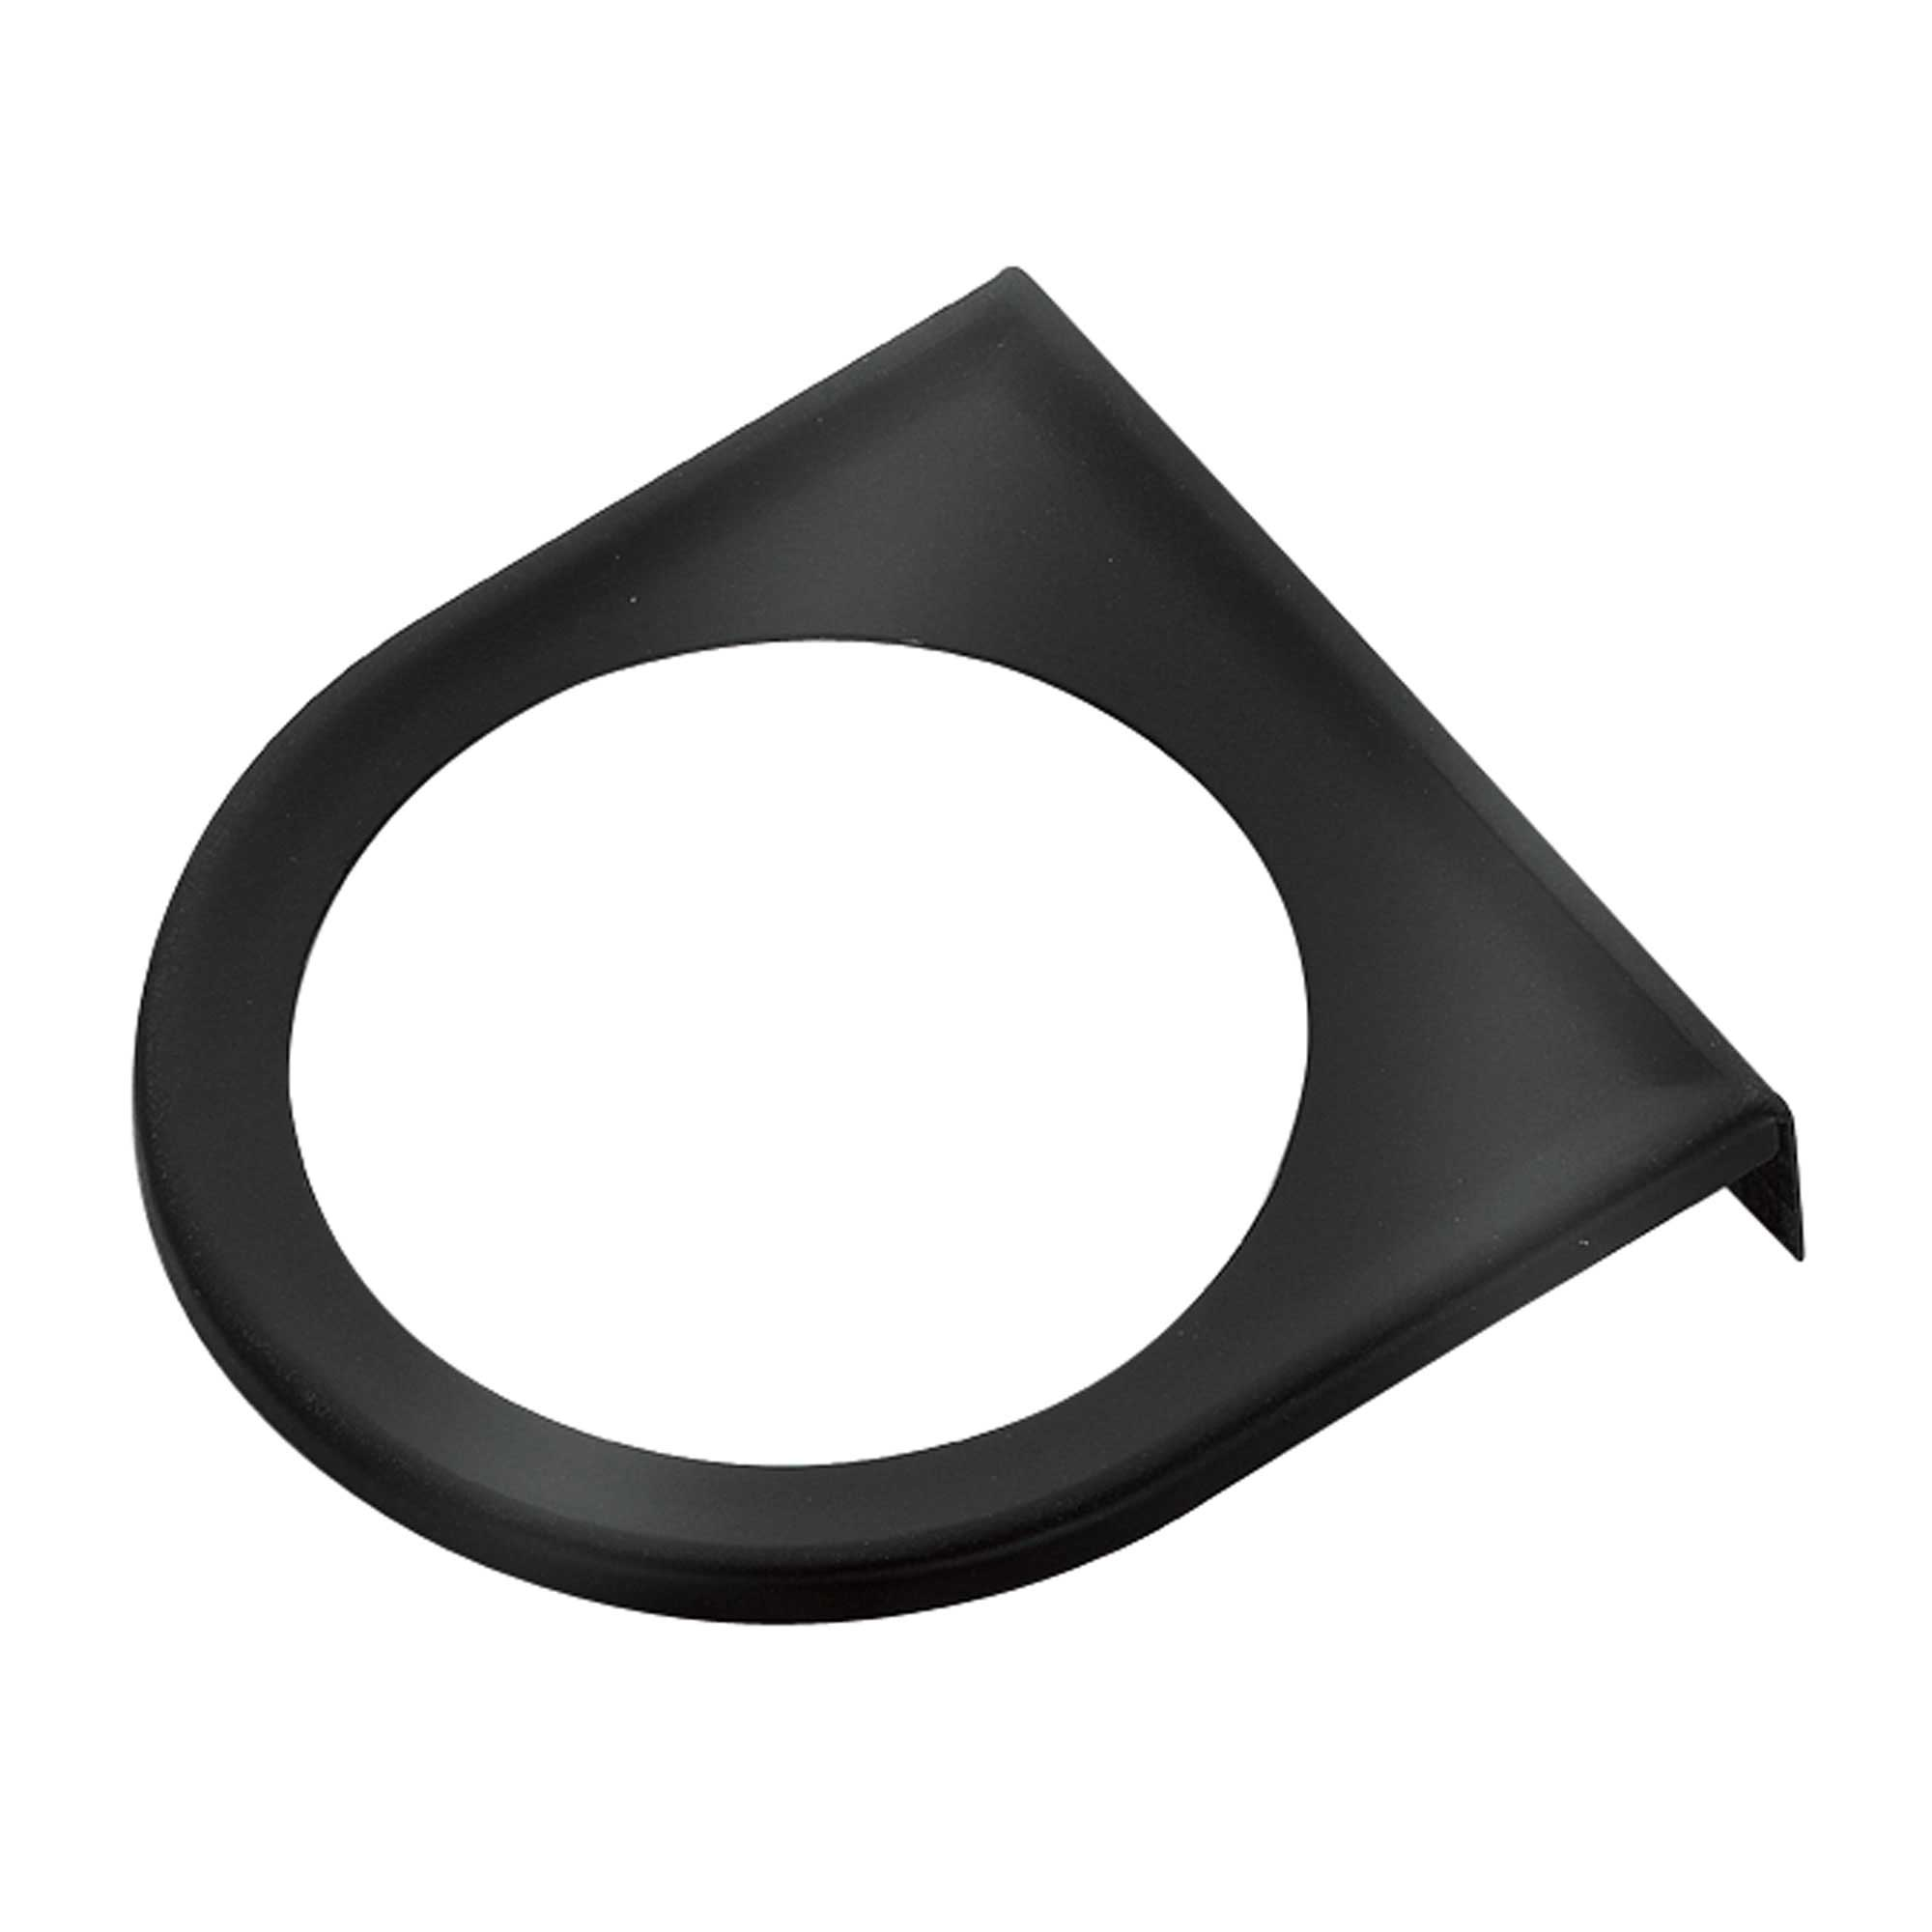 Details about LMA 52mm Gauge Mounting Bracket - Black Plastic -  Race/Rally/Moorsport